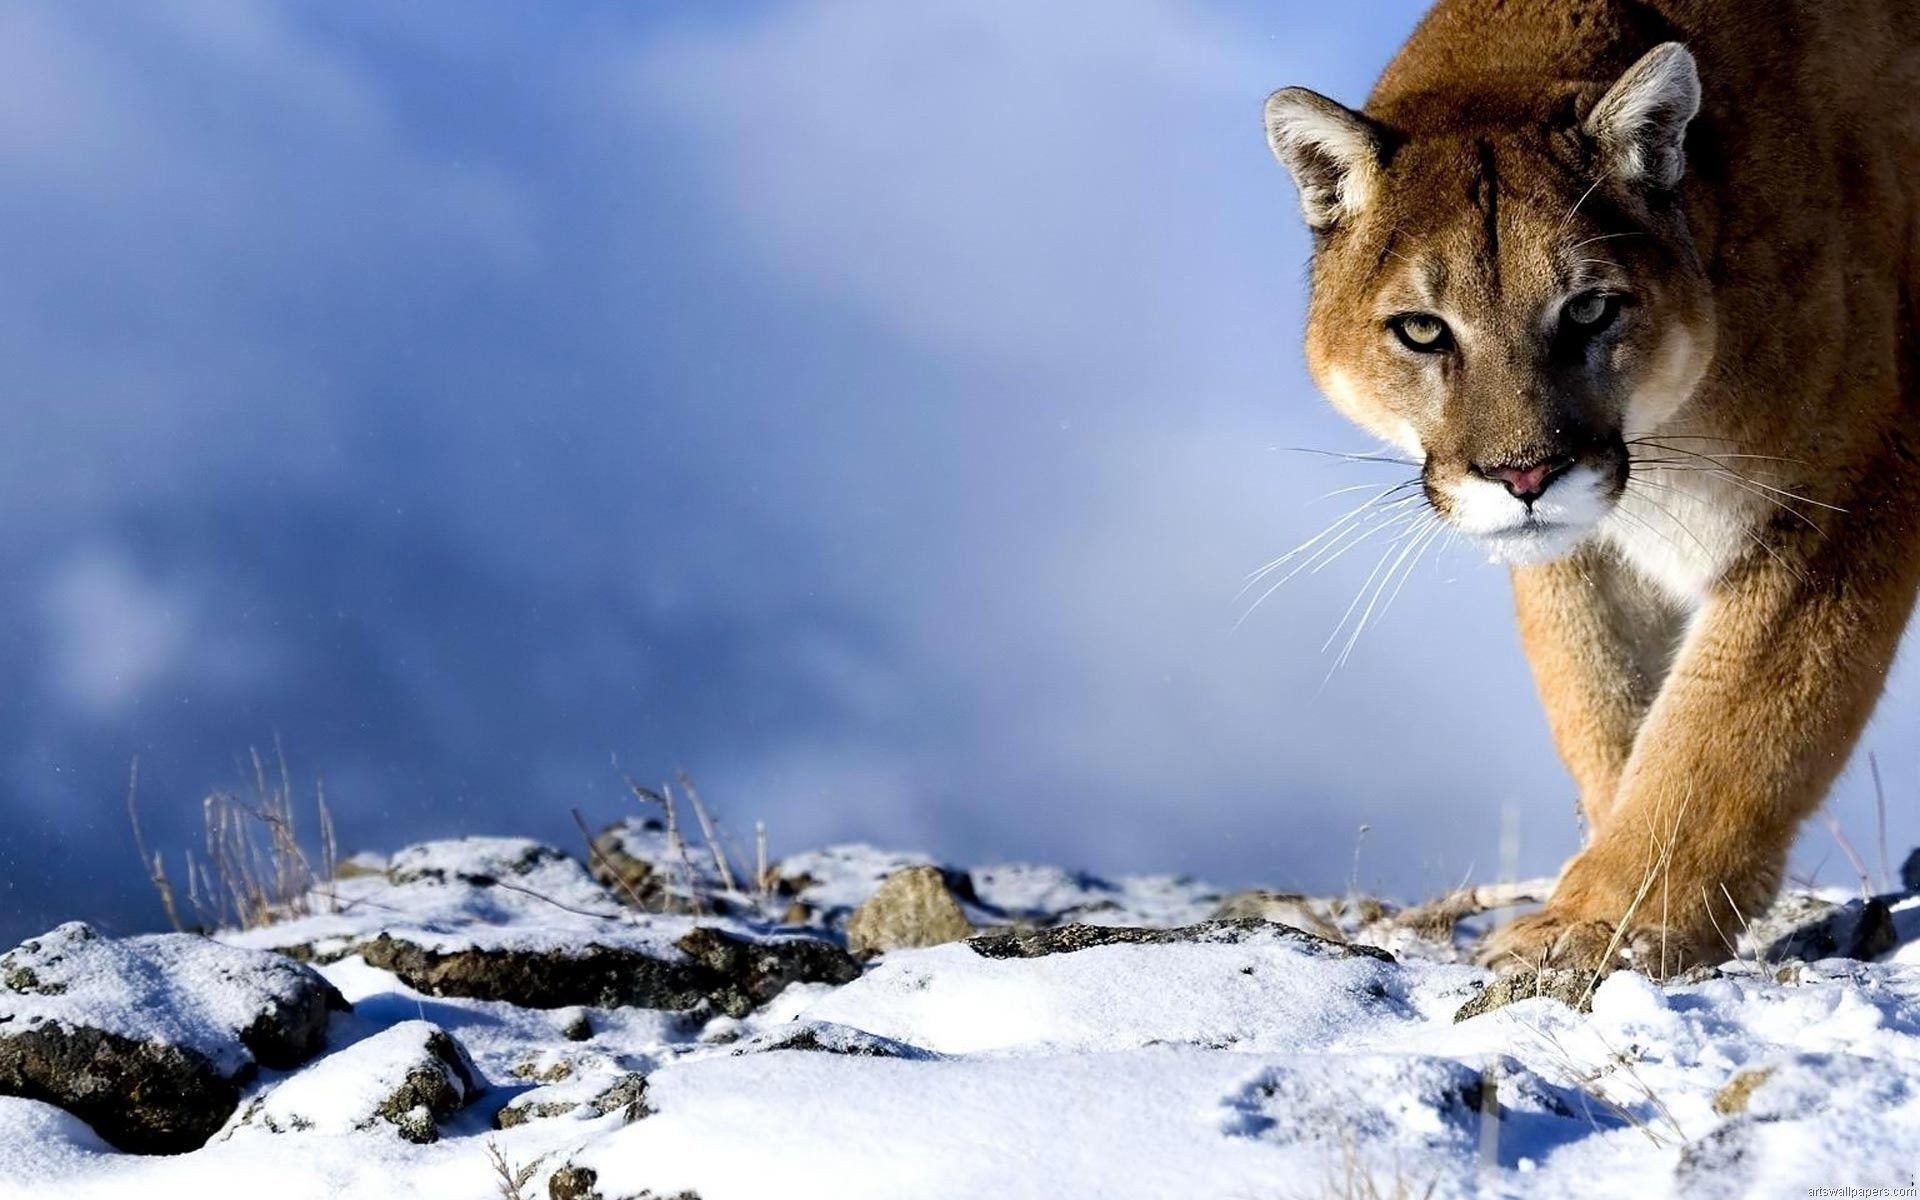 Cubs Tag wallpapers Page 4: Cats Animals Cubs Lions Big Picture ...